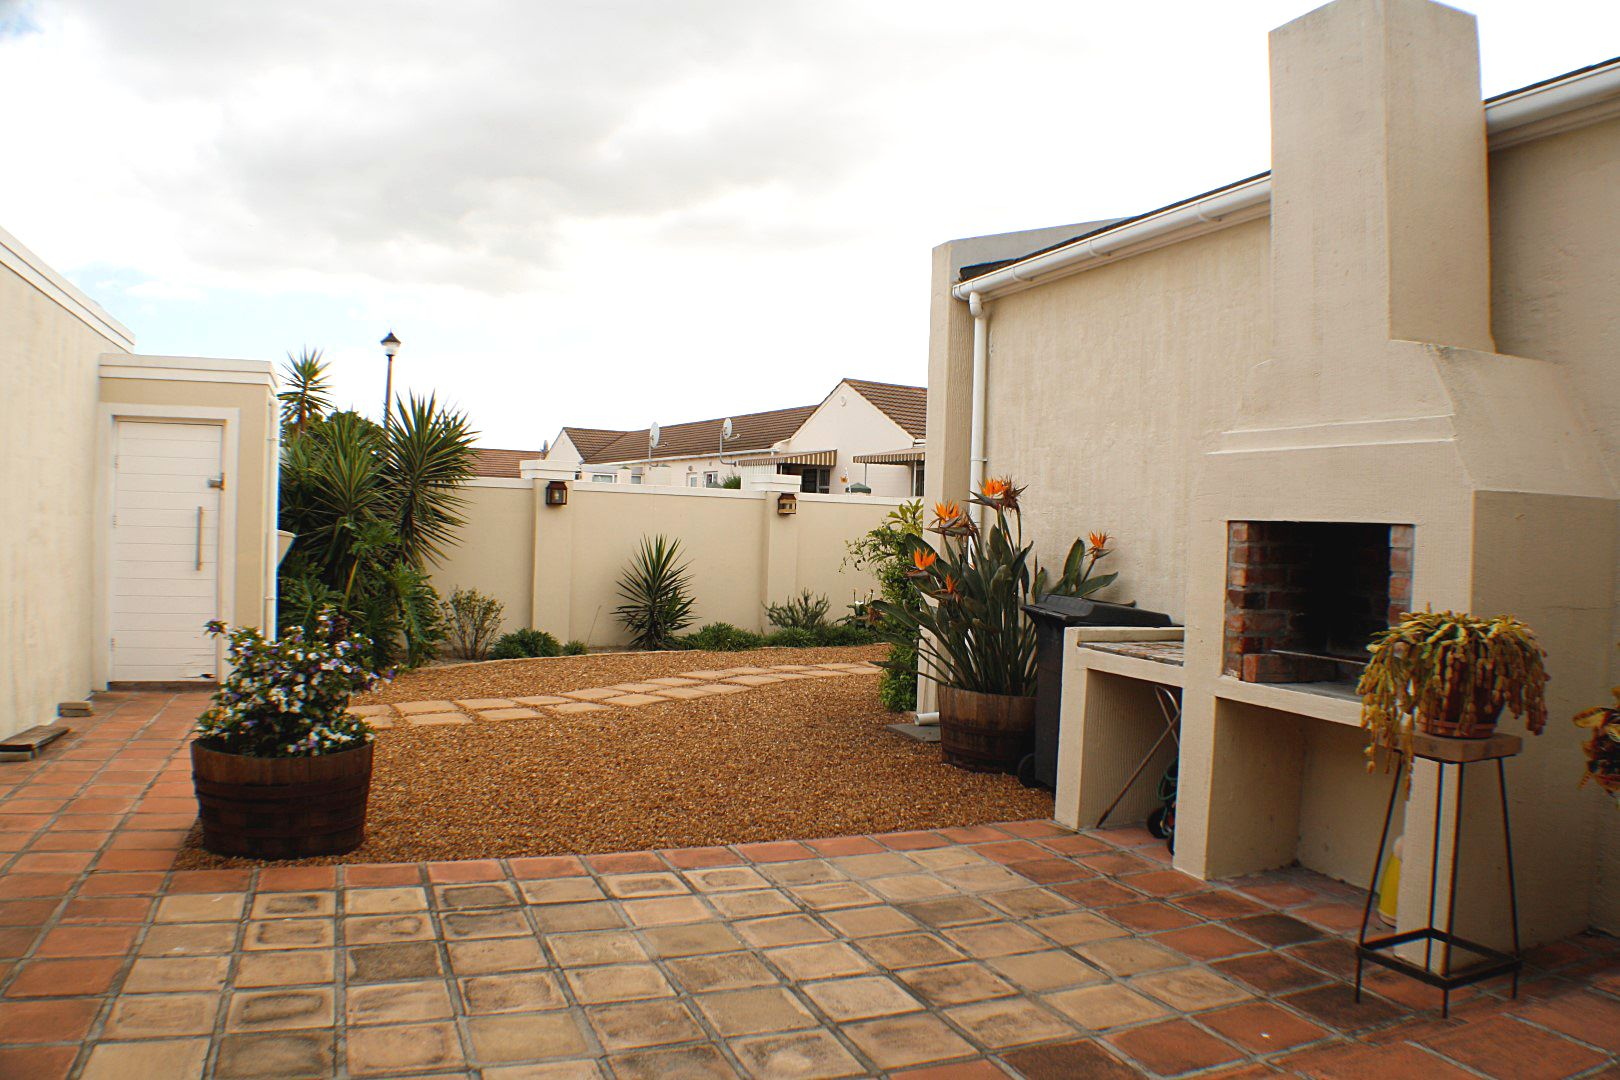 4 Bedroom House for sale in Edgemead ENT0067558 : photo#14